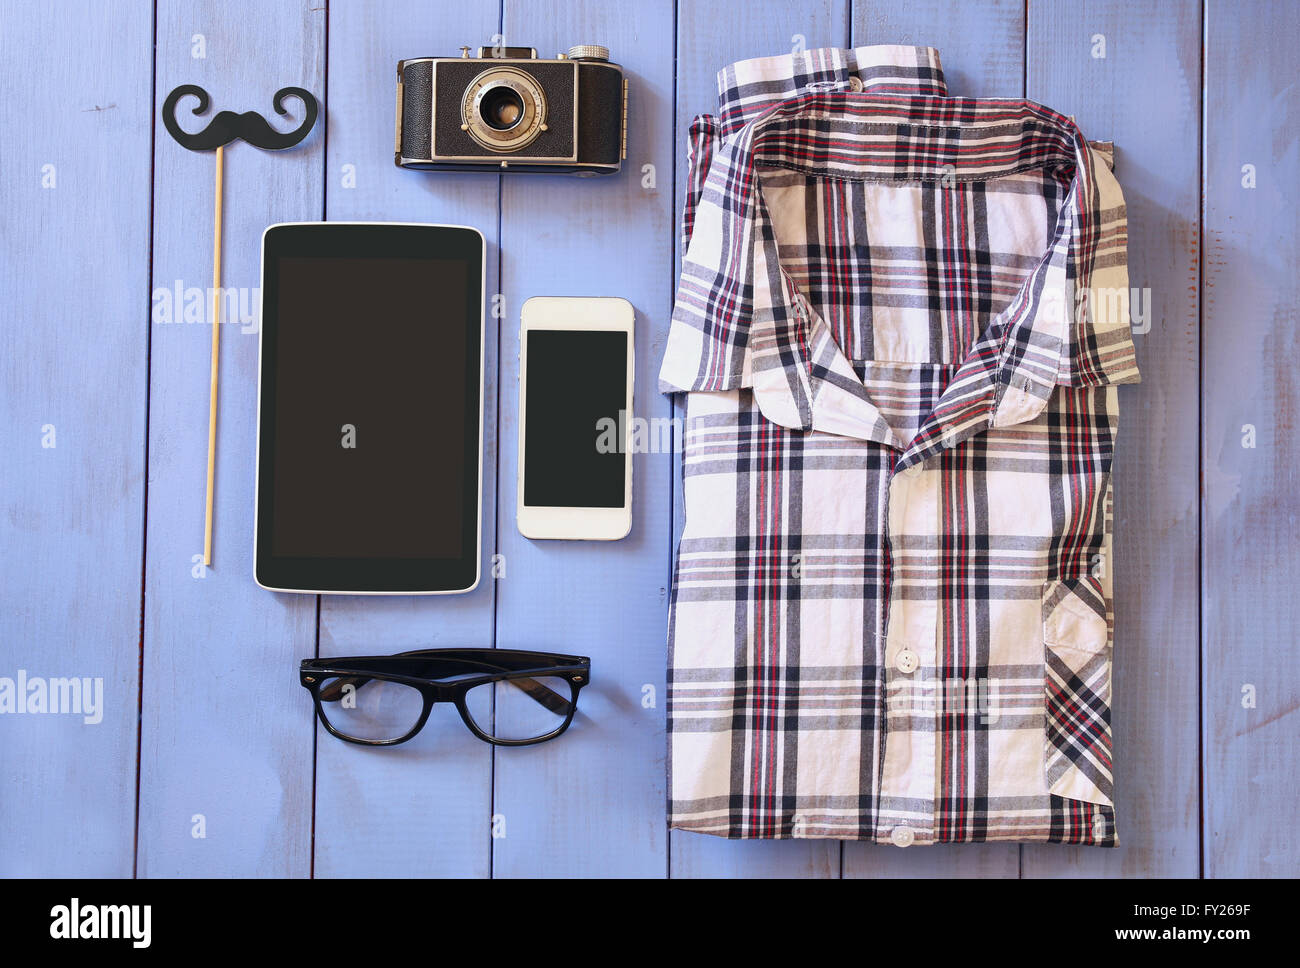 top view image of hipster accessories and clothes a wooden background. vintage filtered and toned - Stock Image